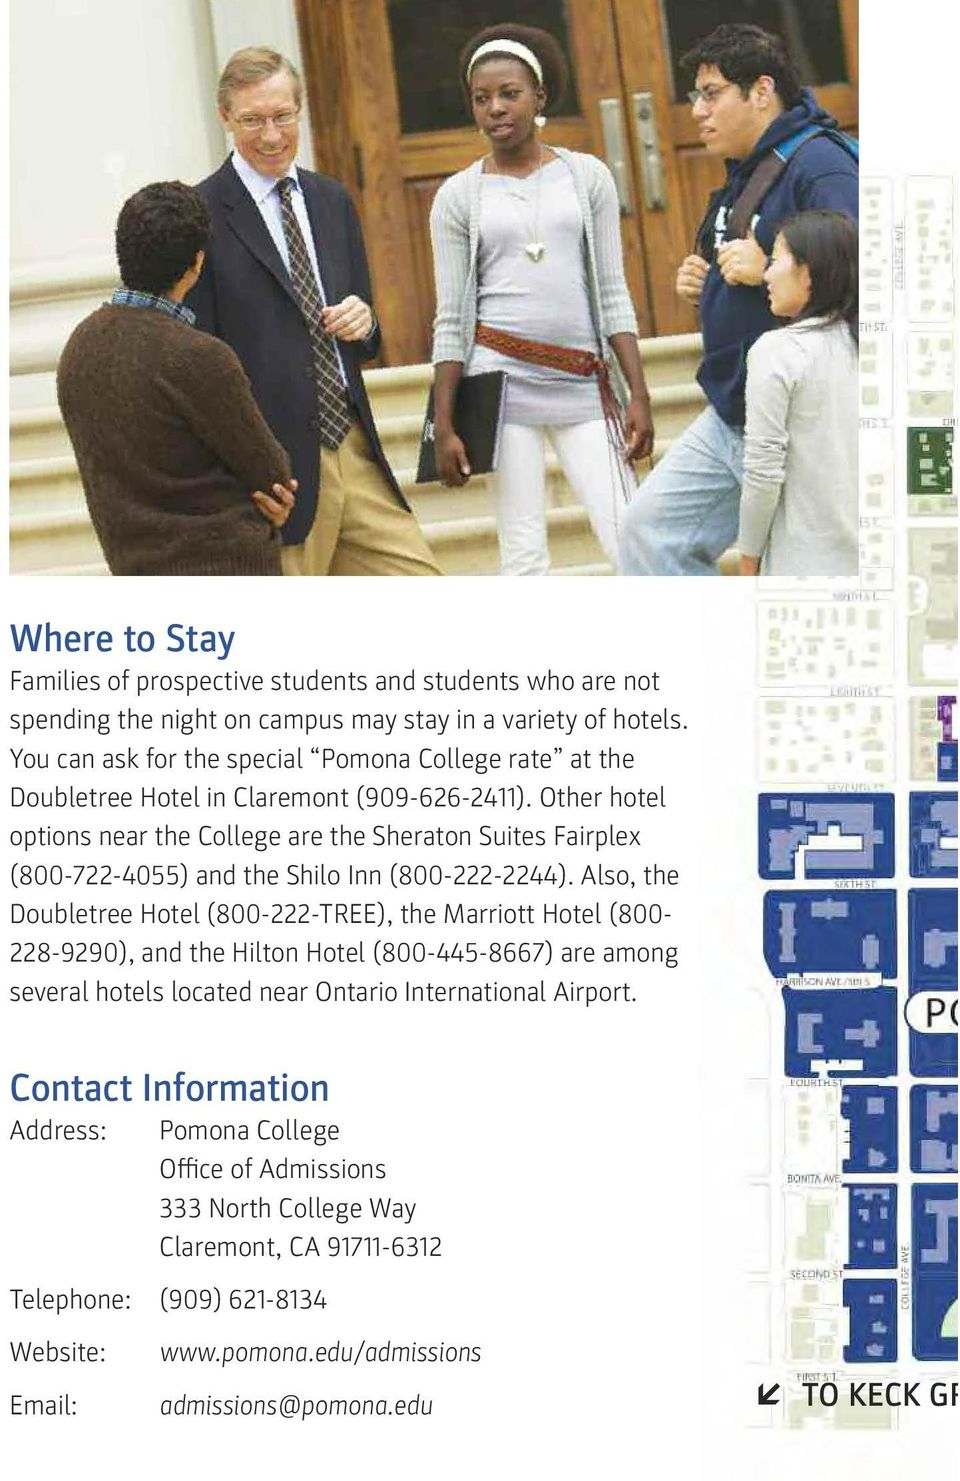 Other hotel options near the College are the Sheraton Suites Fairplex (800-722-4055) and the Shilo Inn (800-222-2244).